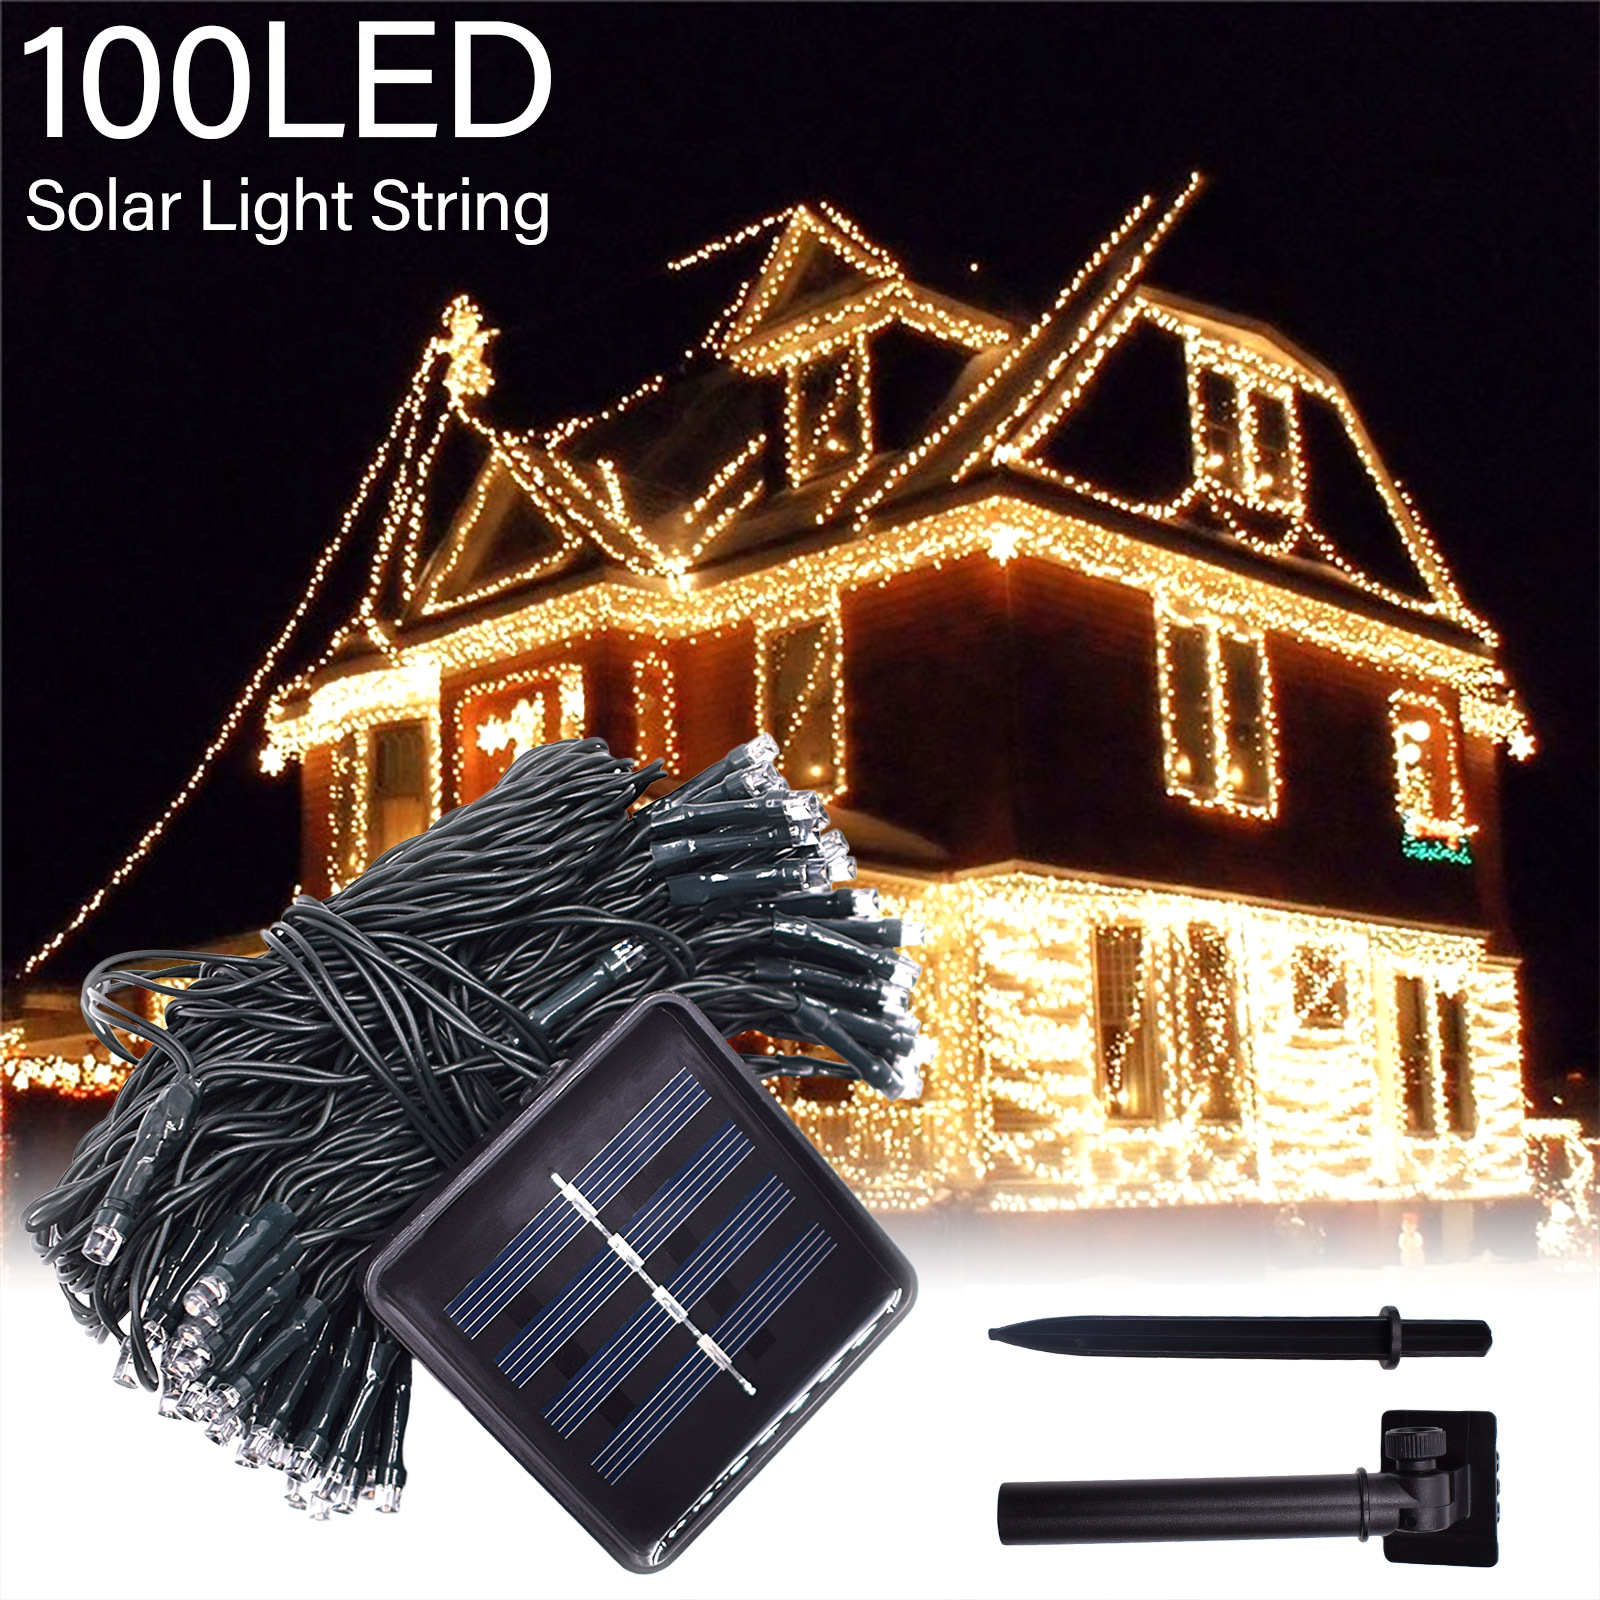 8 Modes Solar String Lights Outdoor Lighting Waterproof Christmas Fairy Light For Xmas Garden Homes Ambiance Wedding Party Decor